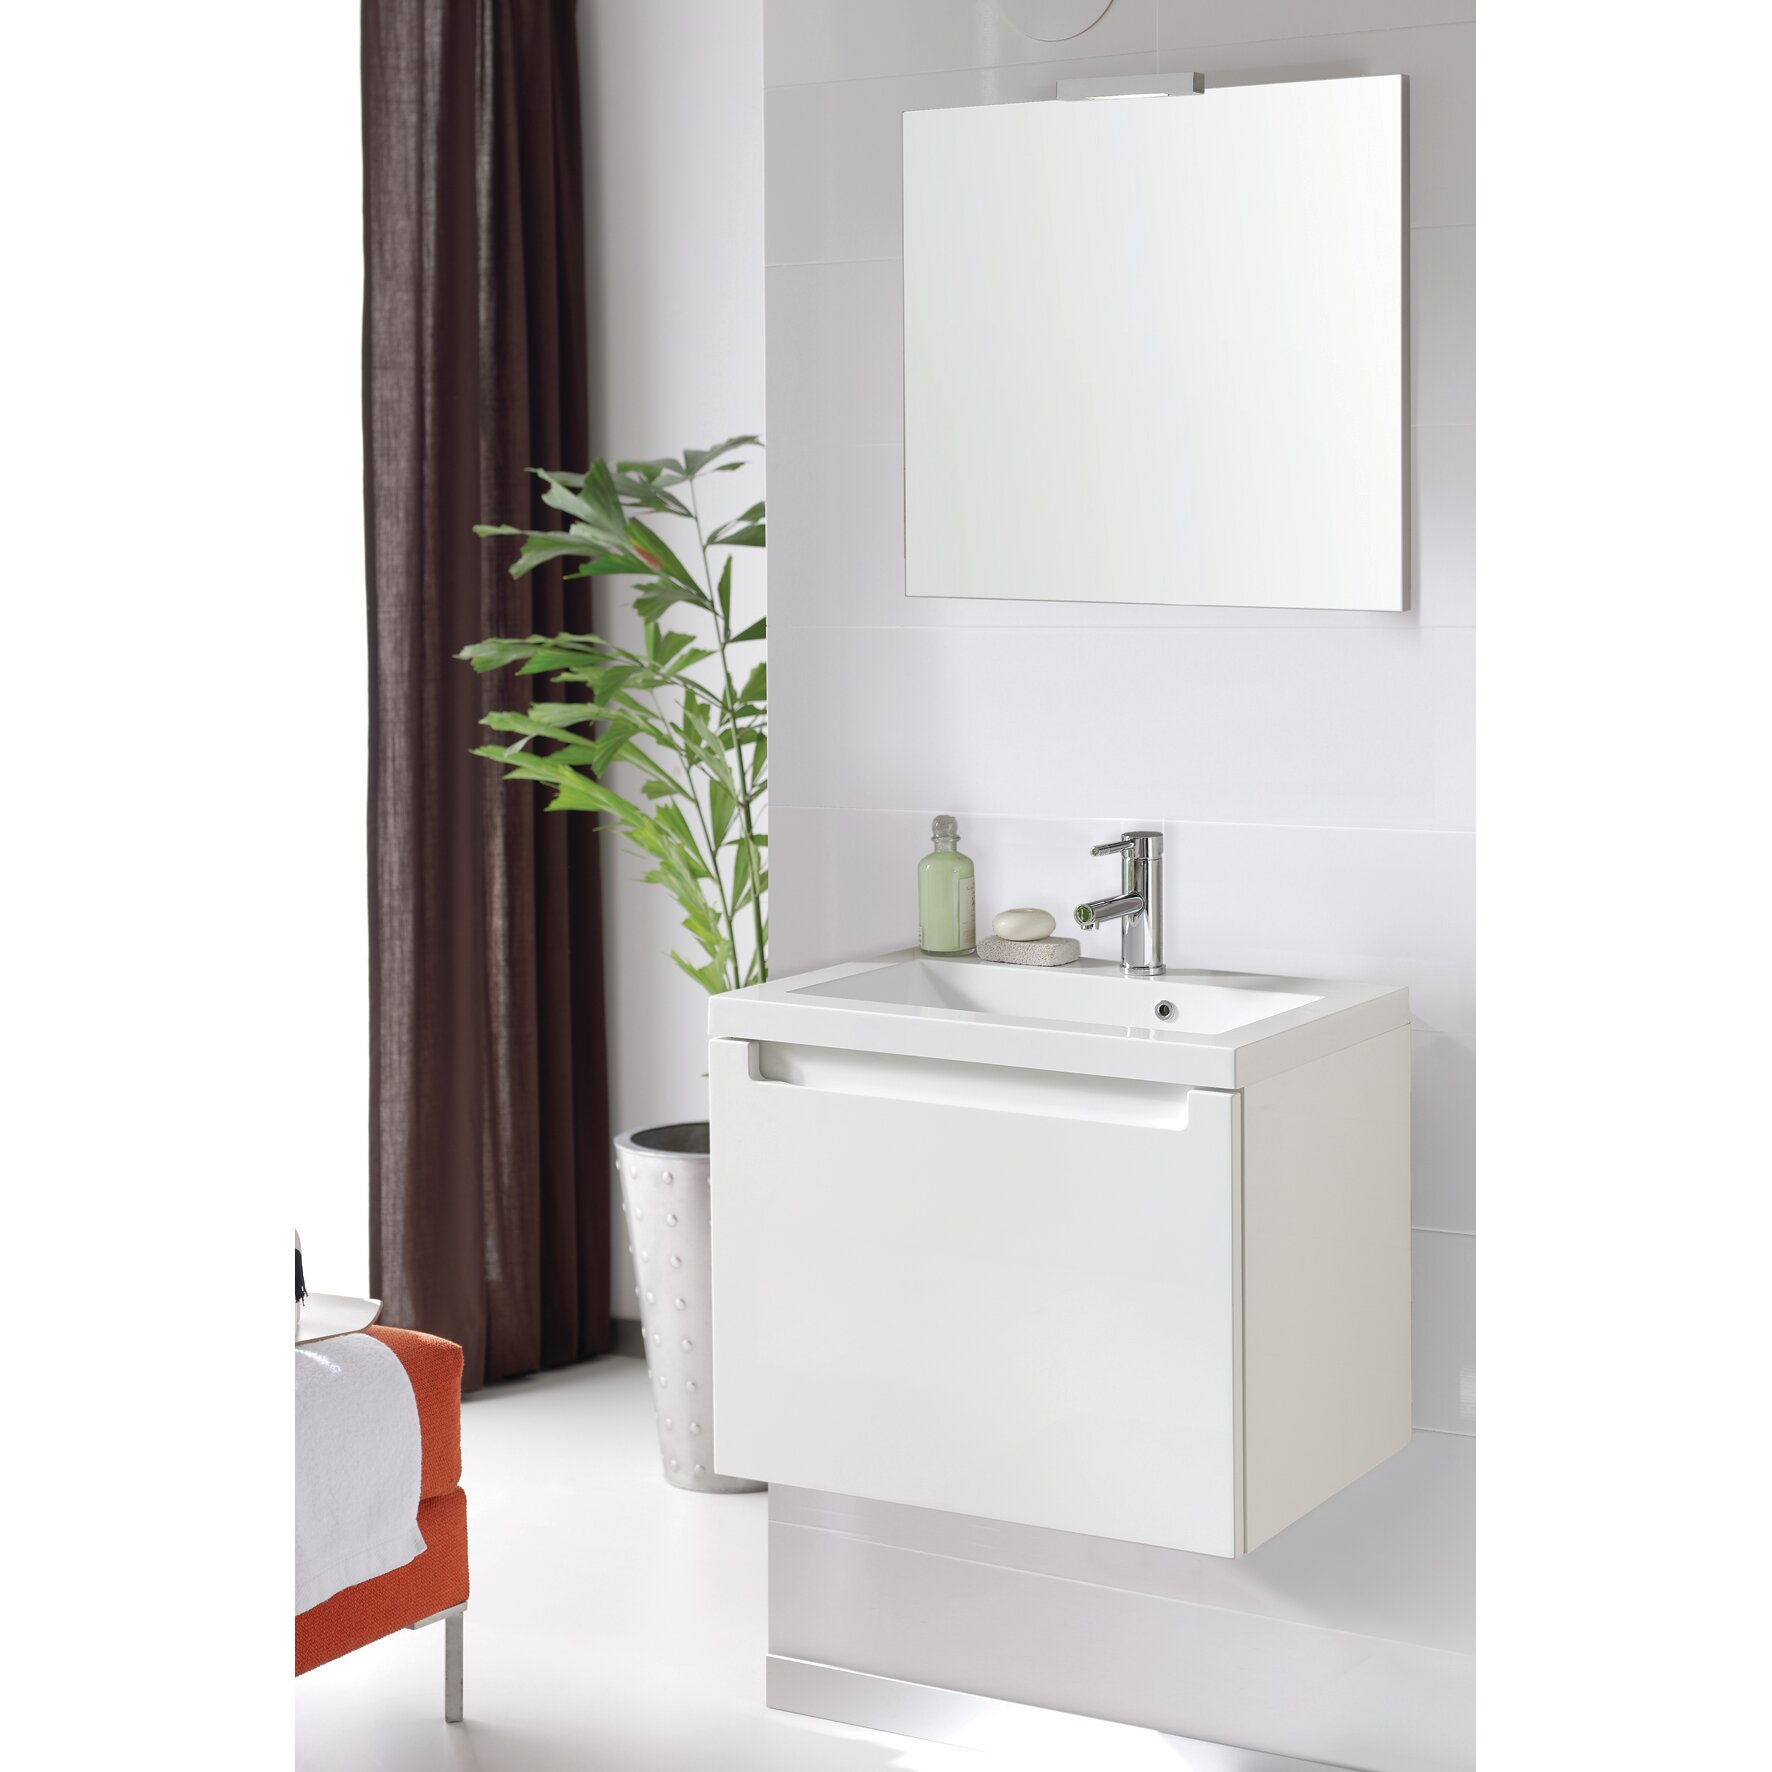 25 Perfect Bathroom Vanities And Mirrors Sets | eyagci.com